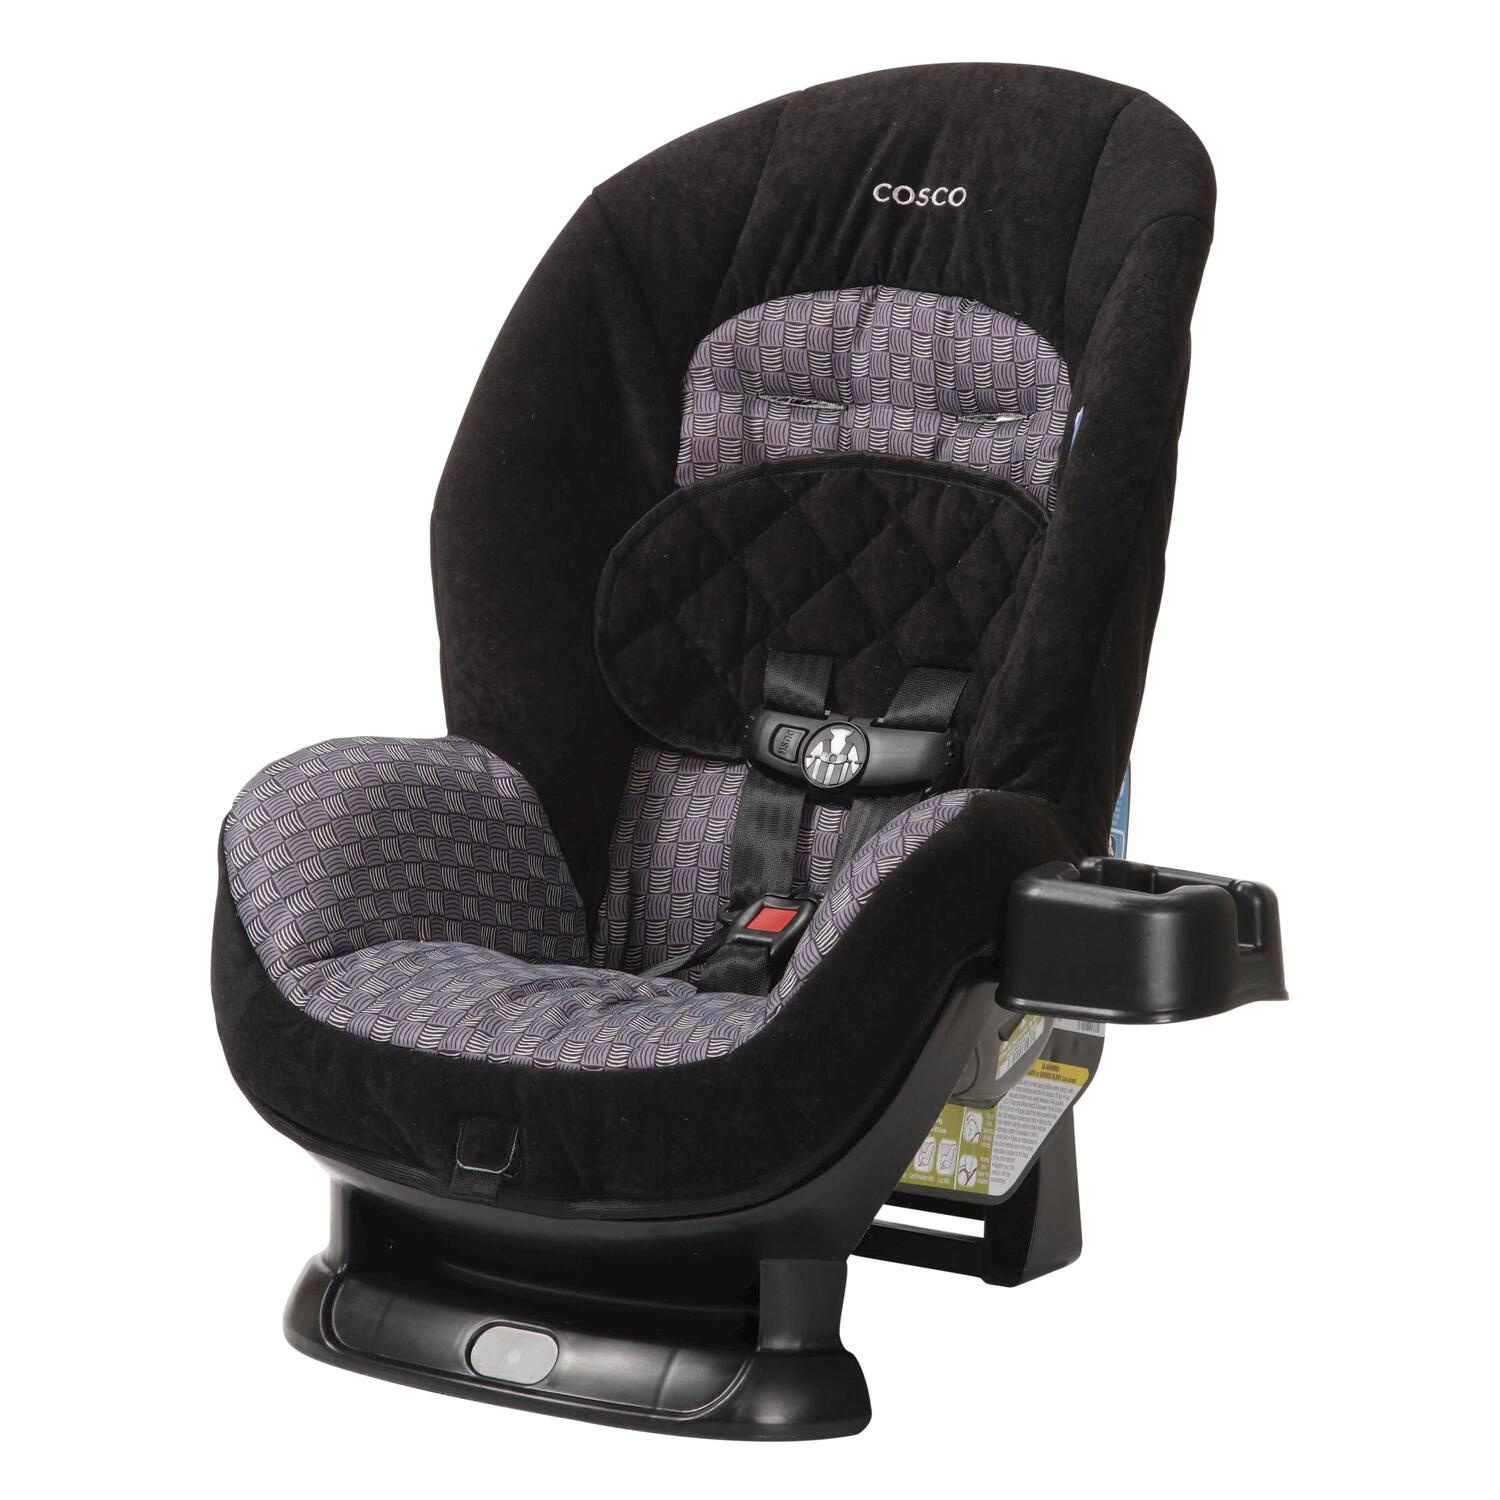 cosco car seats. Black Bedroom Furniture Sets. Home Design Ideas